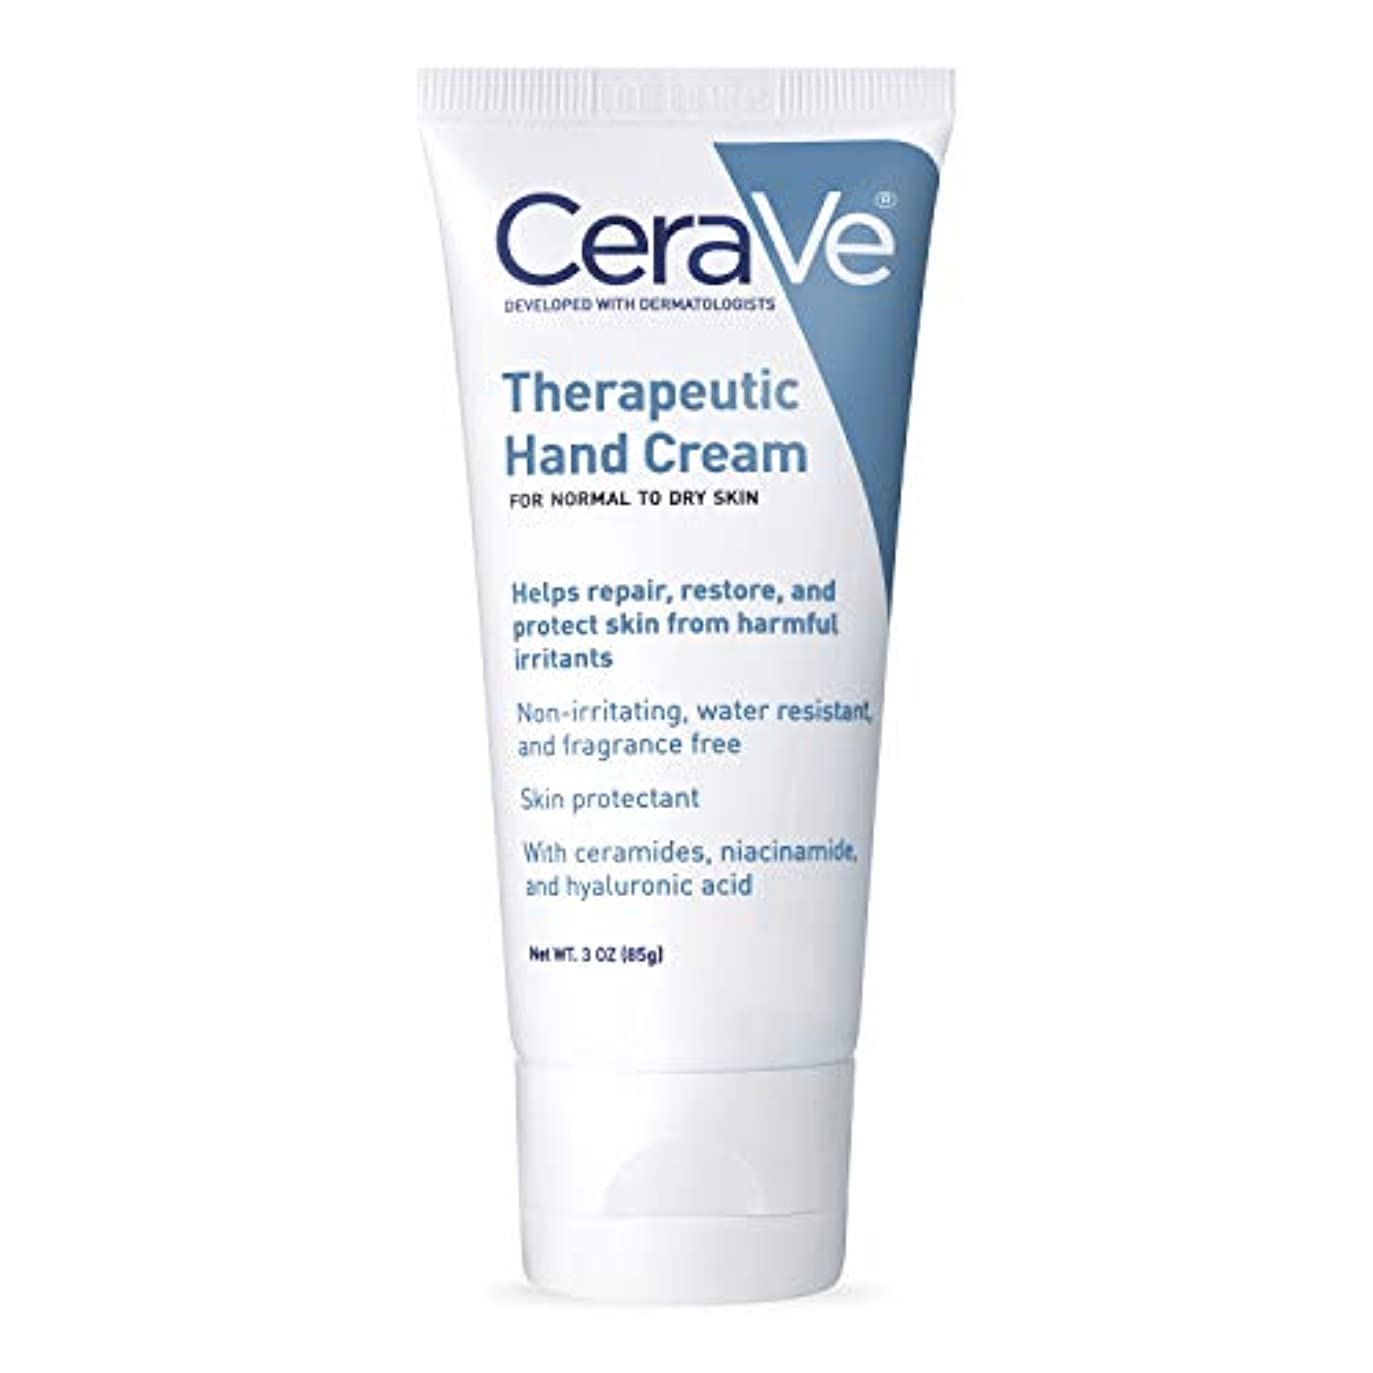 精通したメトロポリタン親海外直送品Cerave CeraVe Therapeutic Hand Cream For Normal to Dry Skin, 3 oz